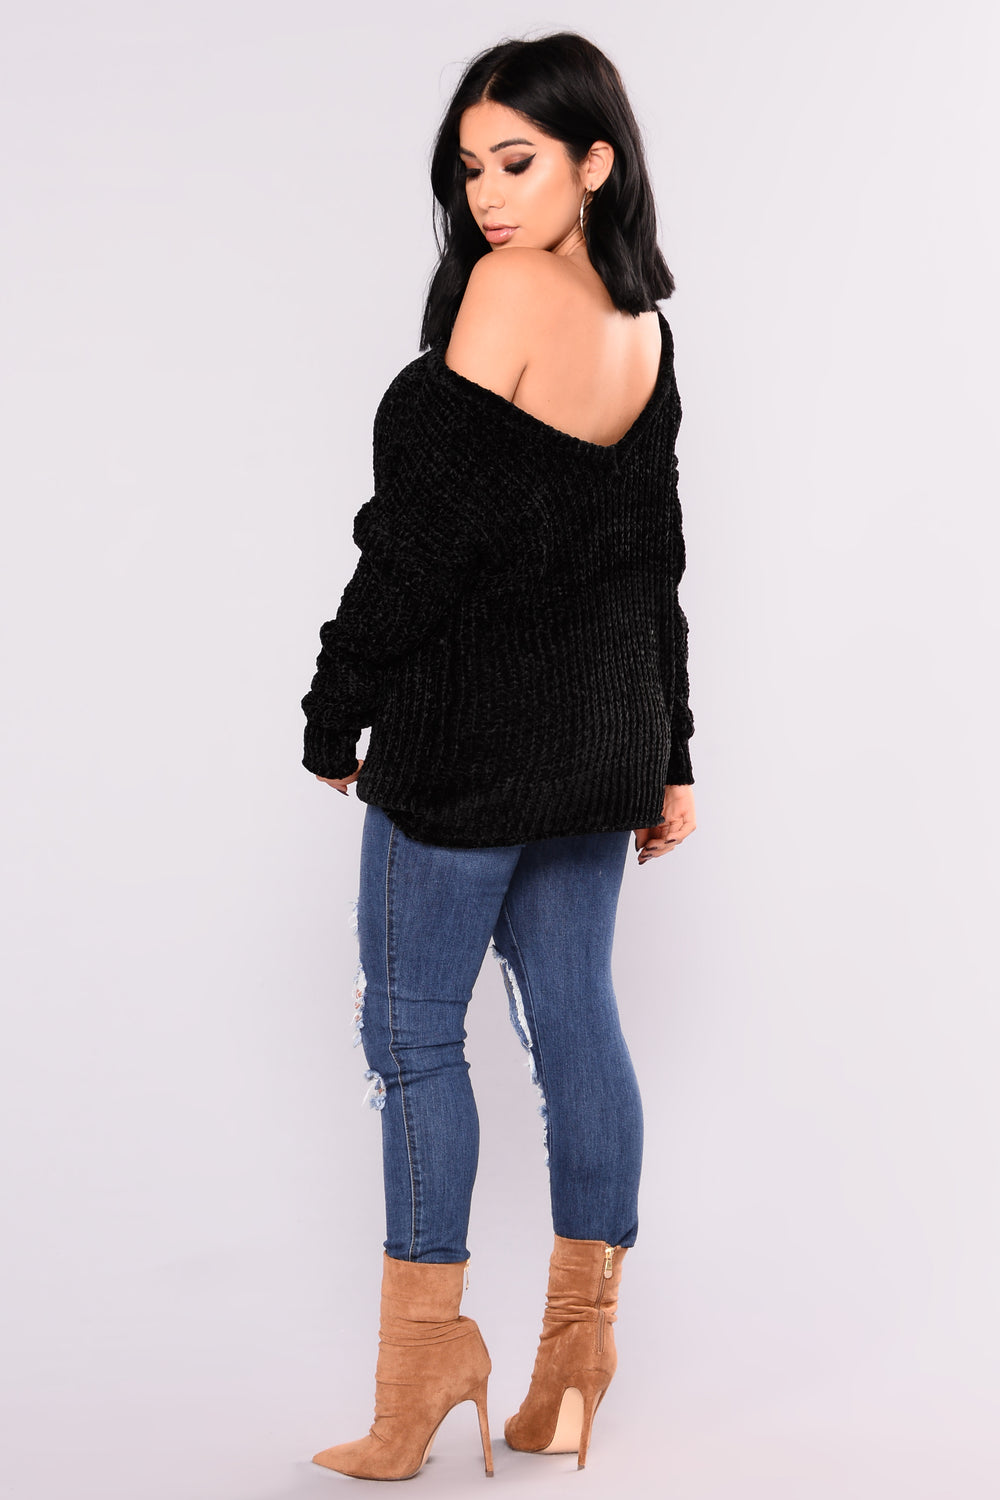 Rosalina Sweater - Black